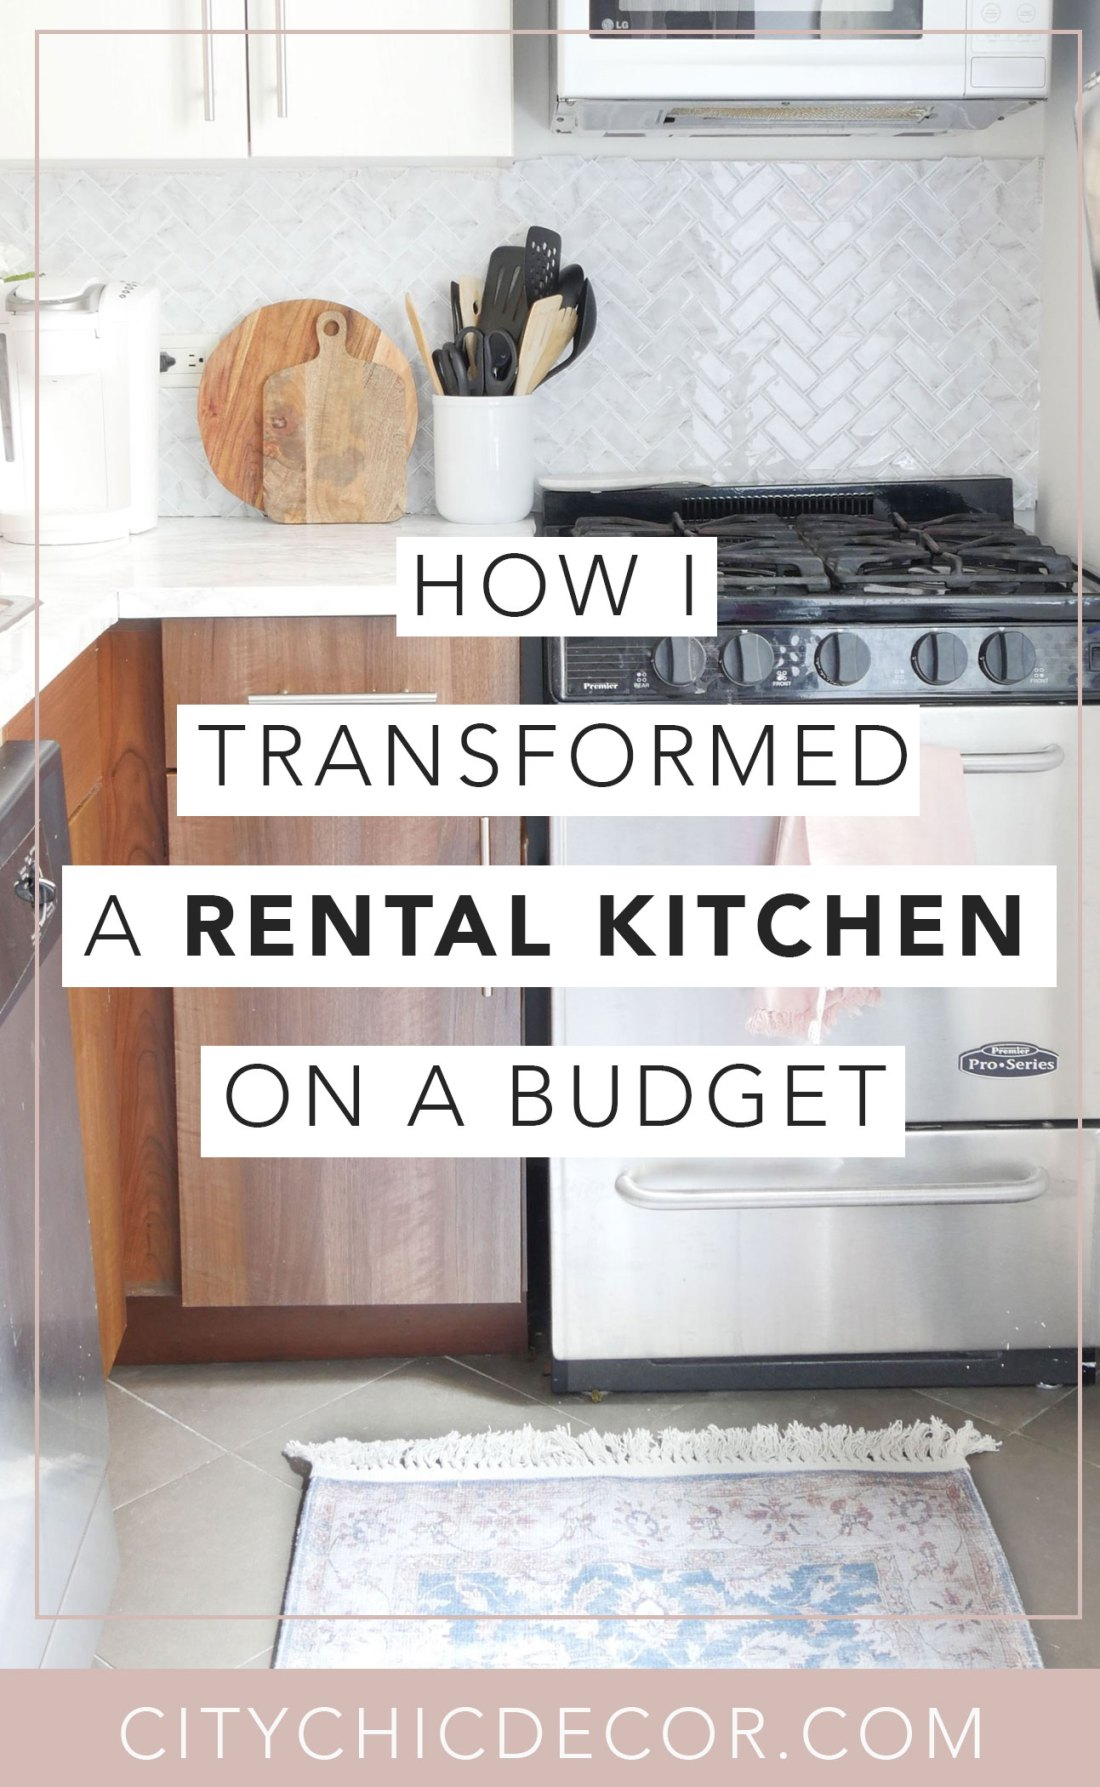 Have an old rental kitchen and dream of having a marble kitchen? Use these temporary solutions to create a rented kitchen that all your guests will drool over! #rentalkitchenmakeover #kitchenideas #smallkitchenideas #kitchenideasonabudget #rentalhomedecorating #rentaldecorating #rentalapartmentdecorating #rentalhomedecoratingdiy